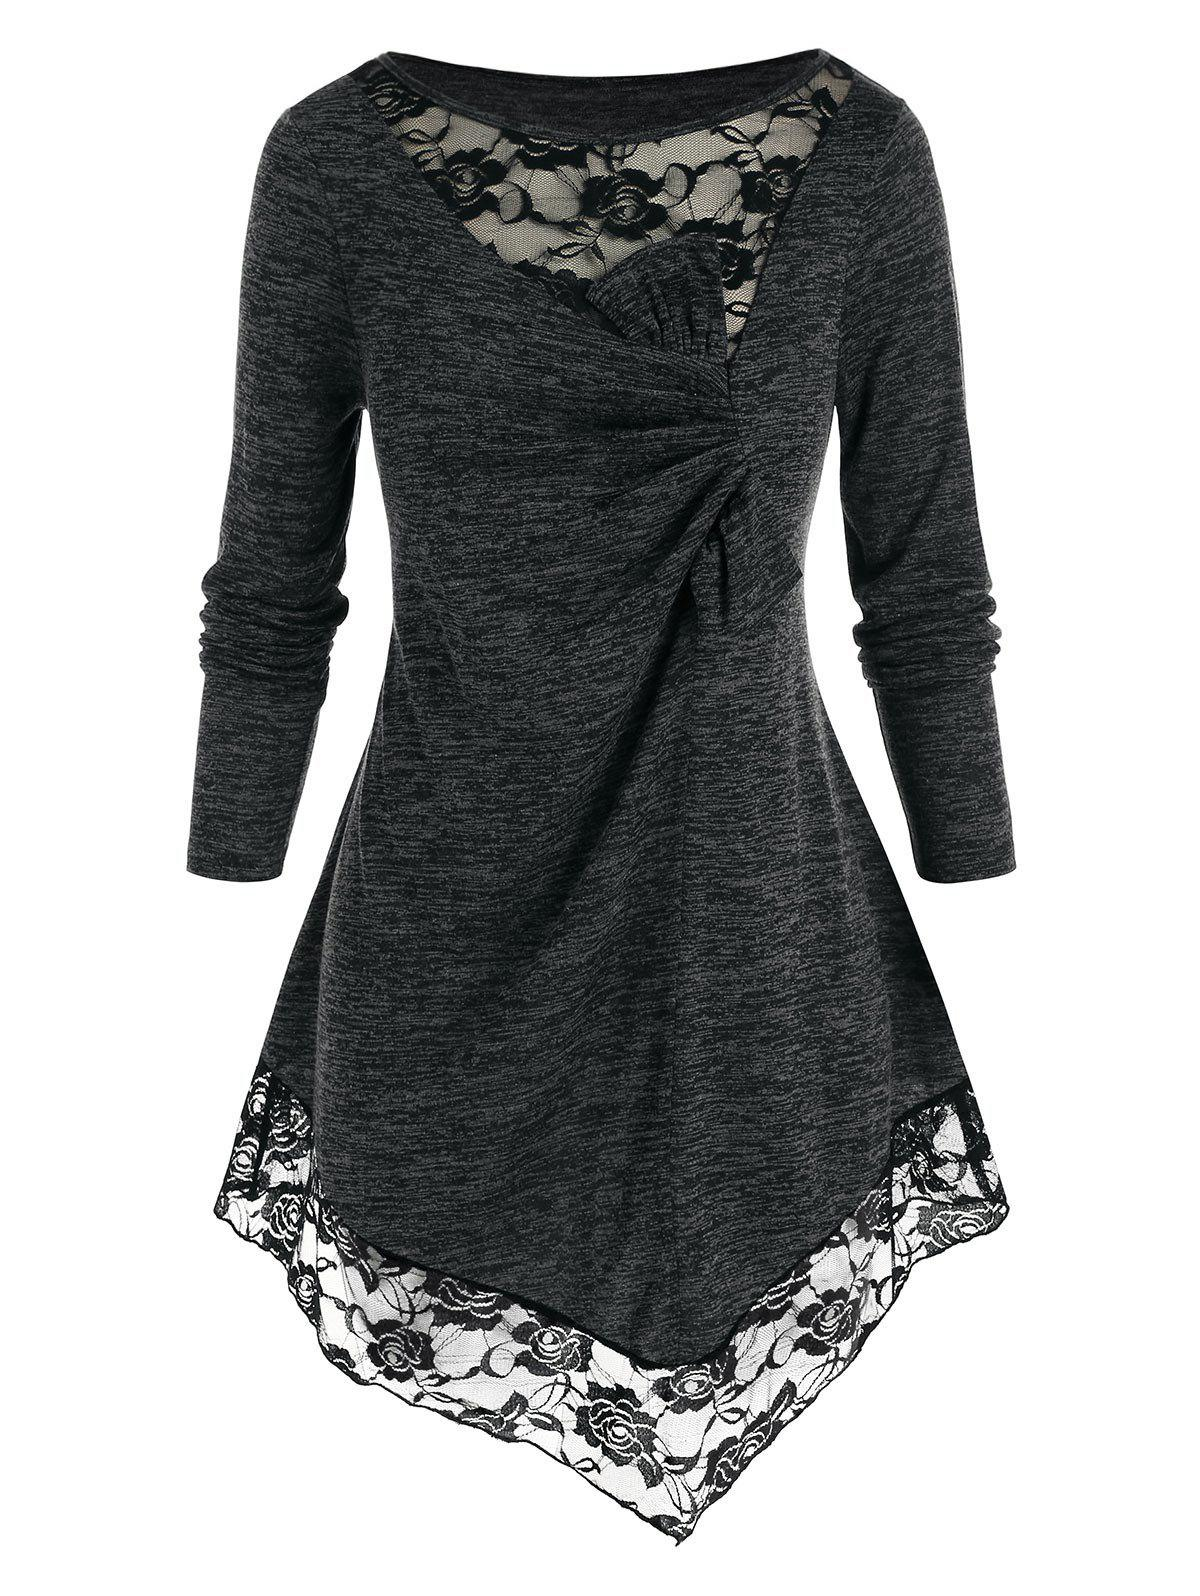 Plus Size Space Dye Lace Insert Asymmetric Tunic T-shirt - BLACK 3X